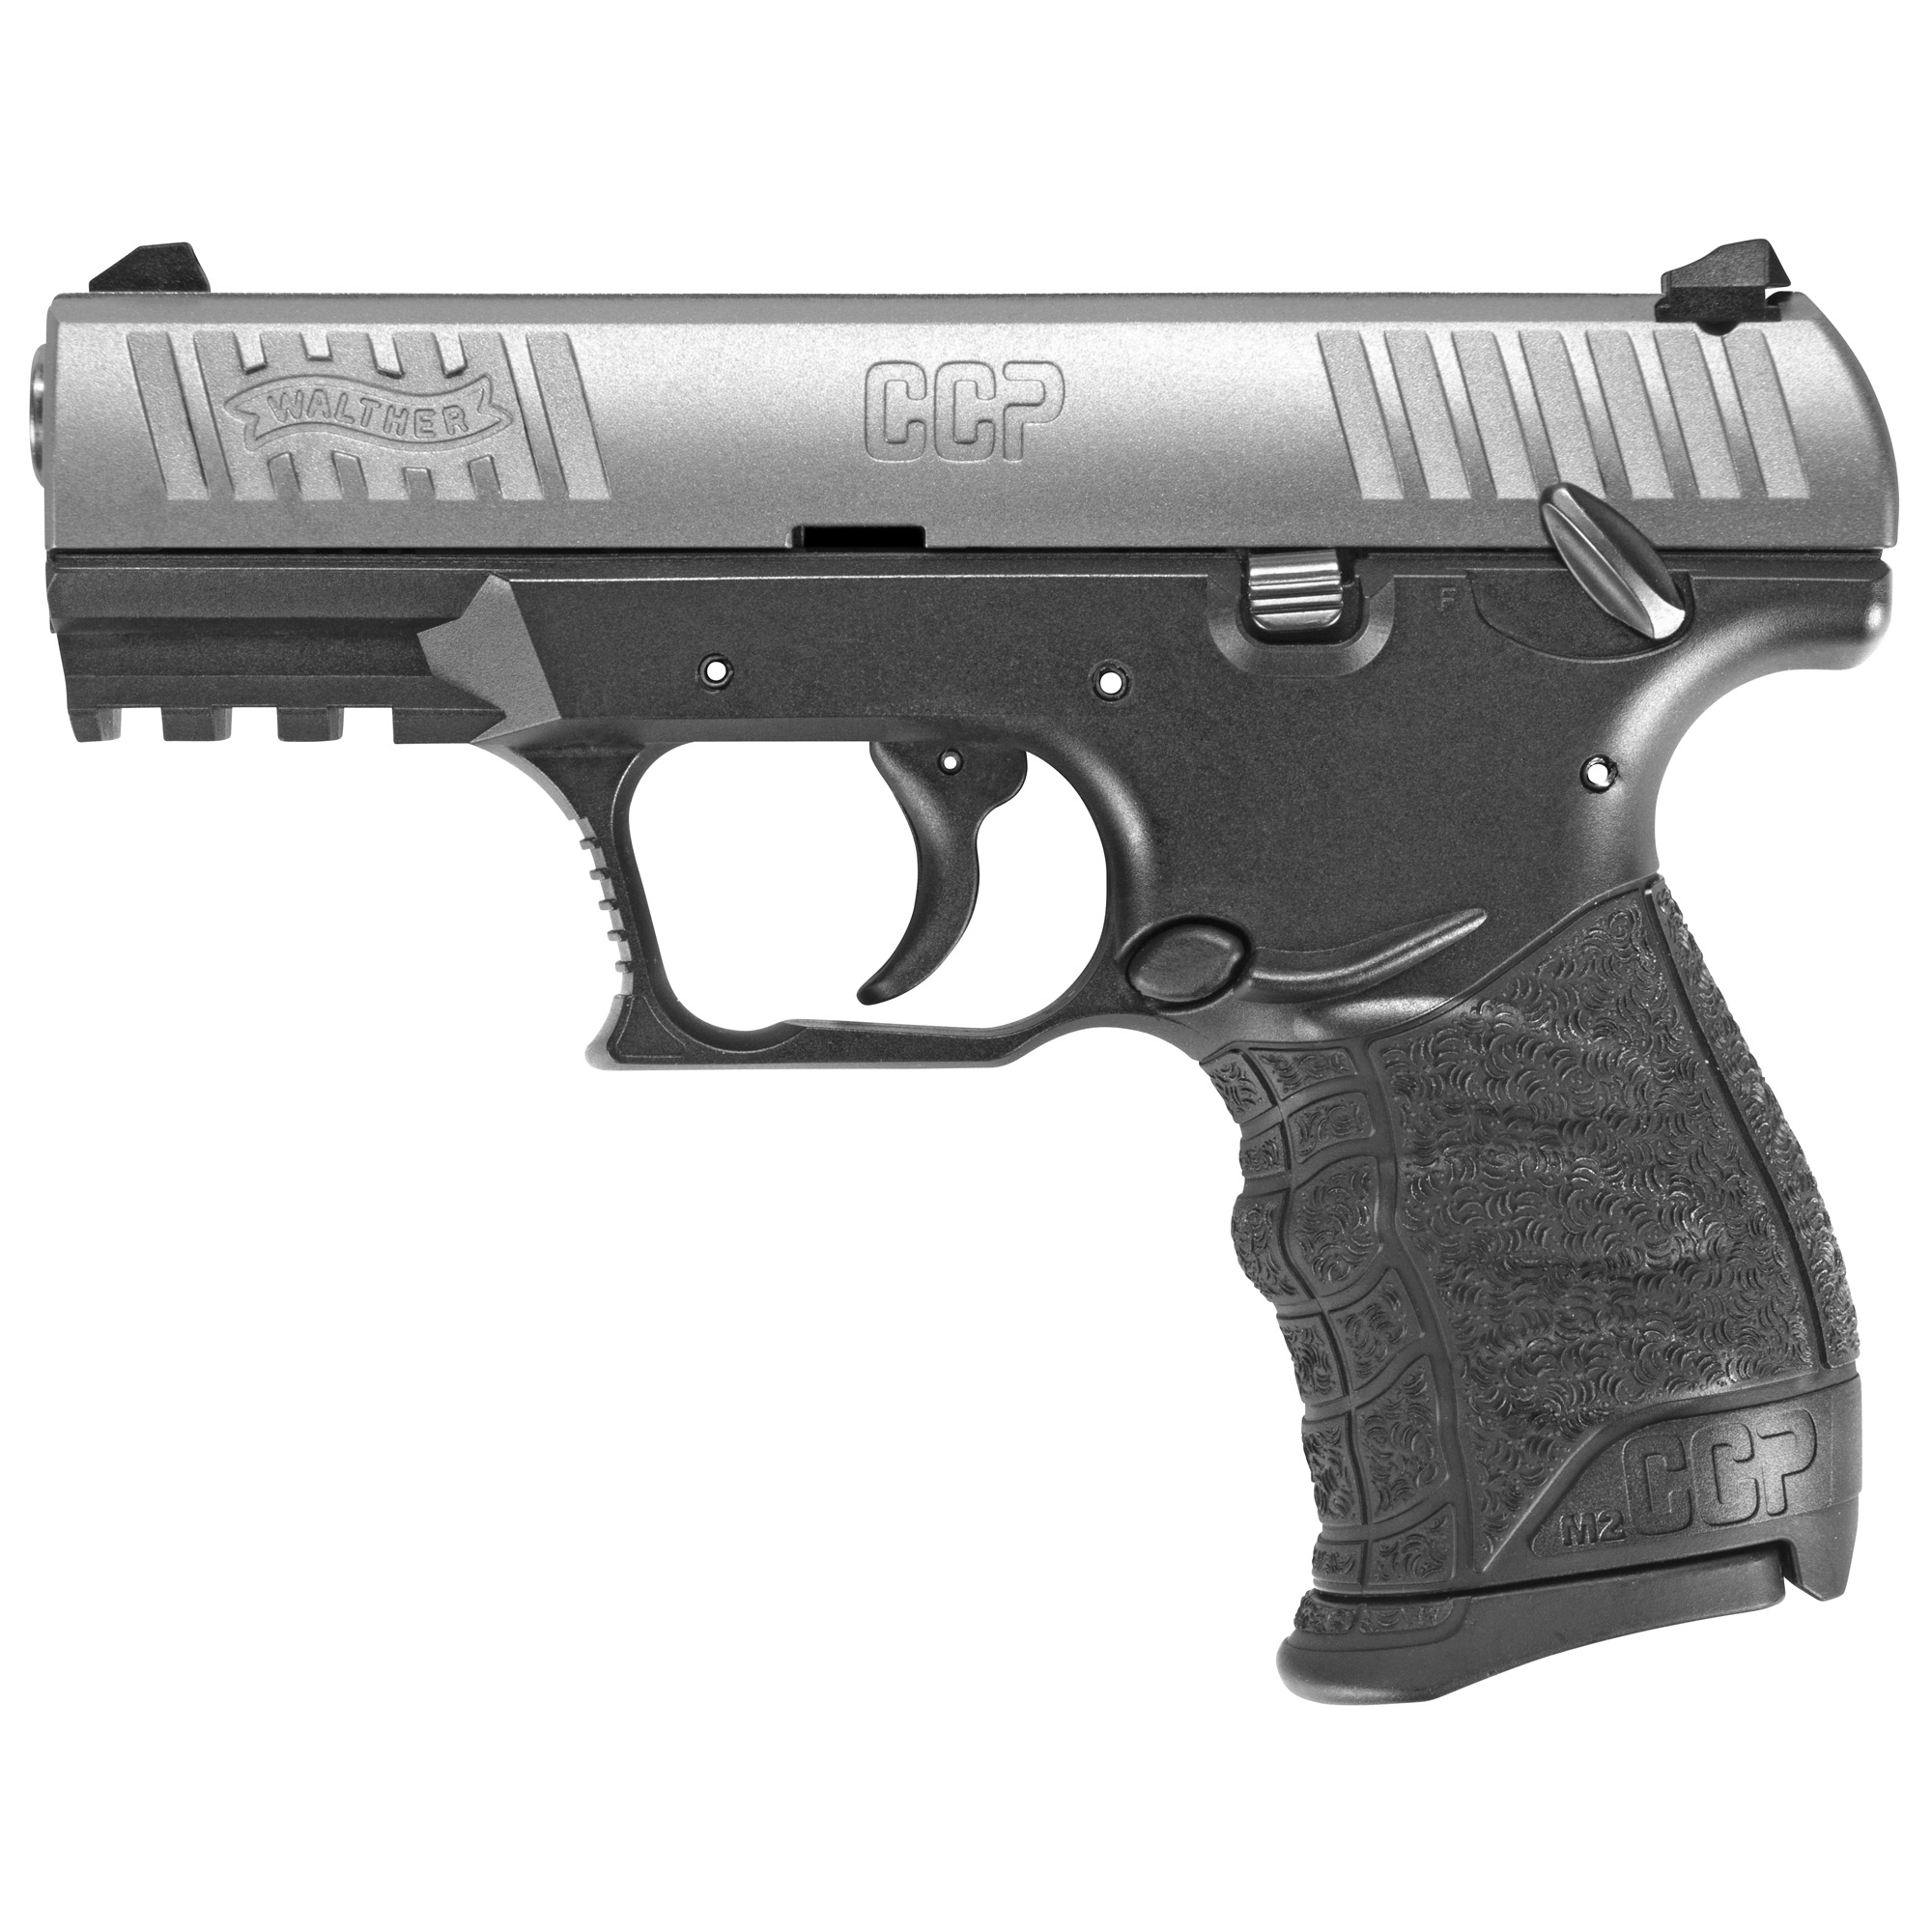 """The all new CCP M2 (Concealed Carry Pistol) in 9mm Luger has an ideal combination of style"""" ergonomics"""" size"""" shape"""" accuracy"""" and ability to conceal comfortably. The Walther SOFTCOIL(TM) gas-delayed blowback technology works to make the CCP an excellent concealed carry firearm."""